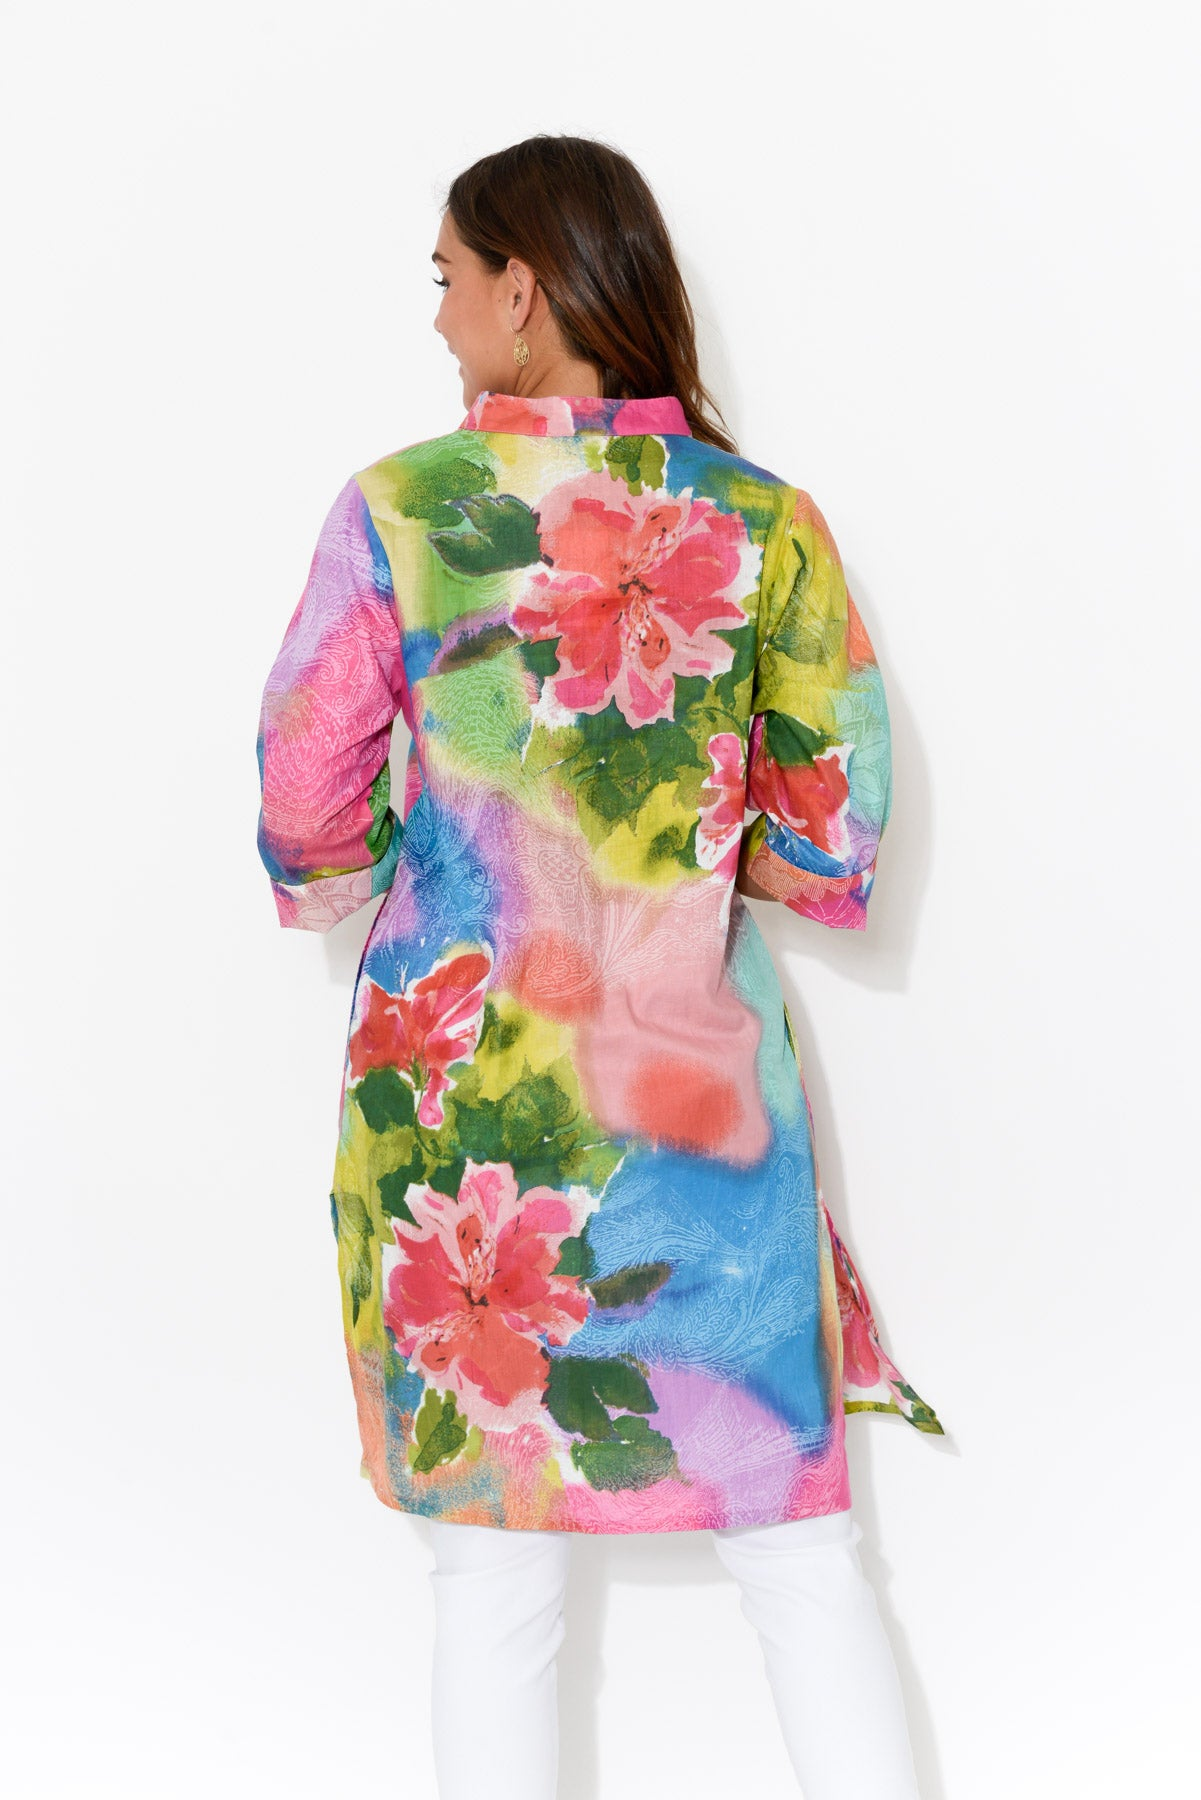 Malolo Pink Peony Sleeved Cotton Dress - Blue Bungalow